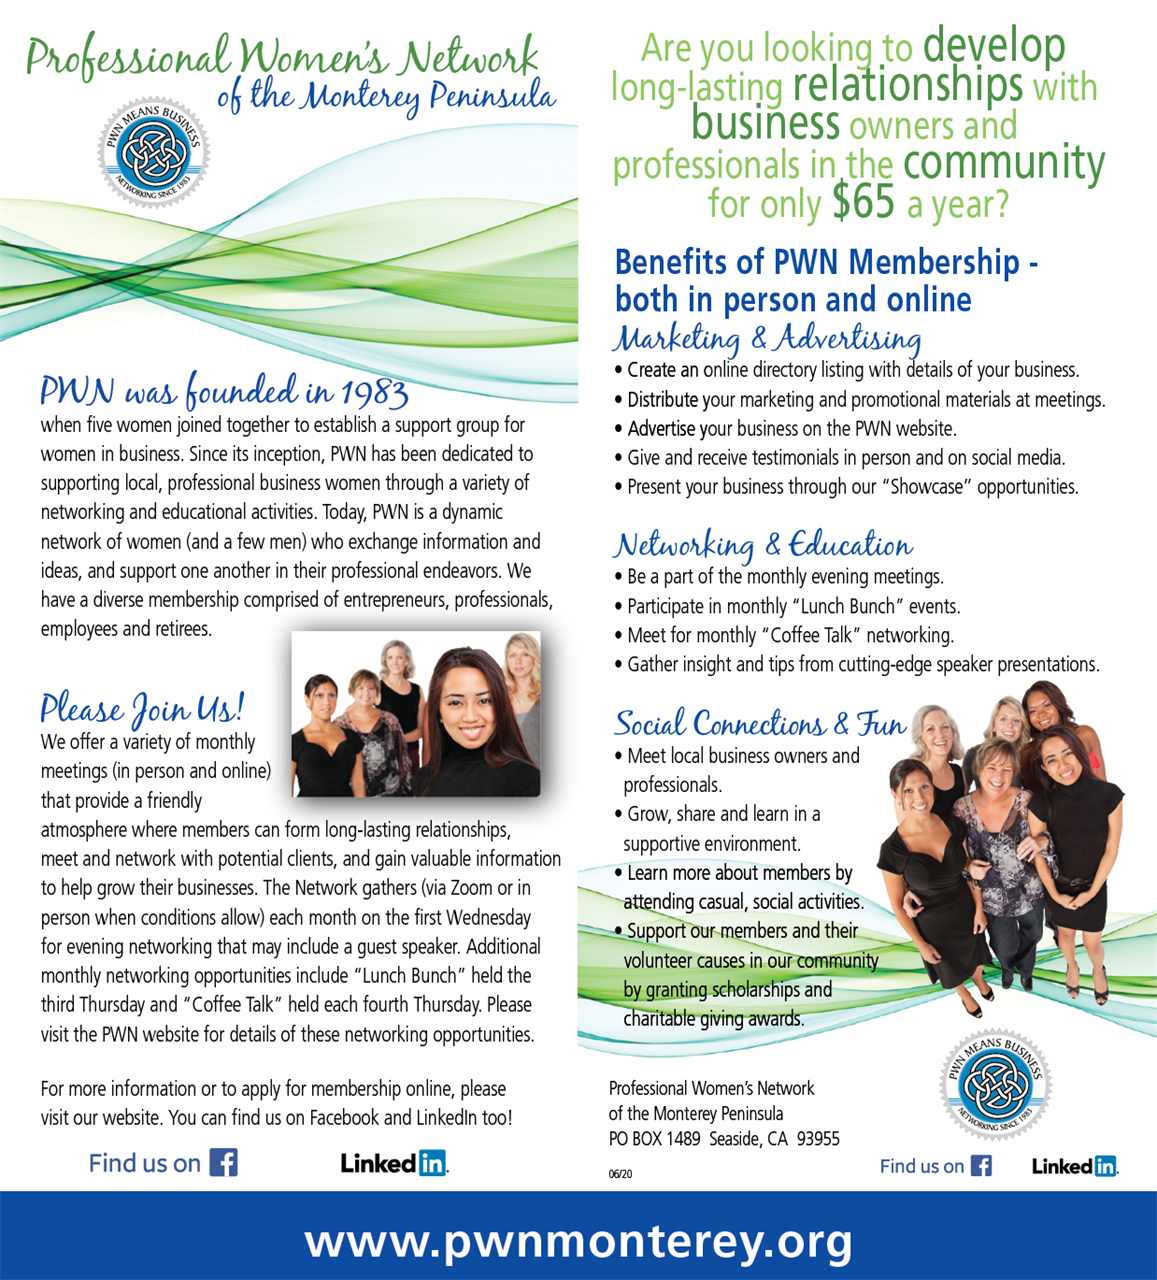 Professional Women's Network of the Monterey Peninsula